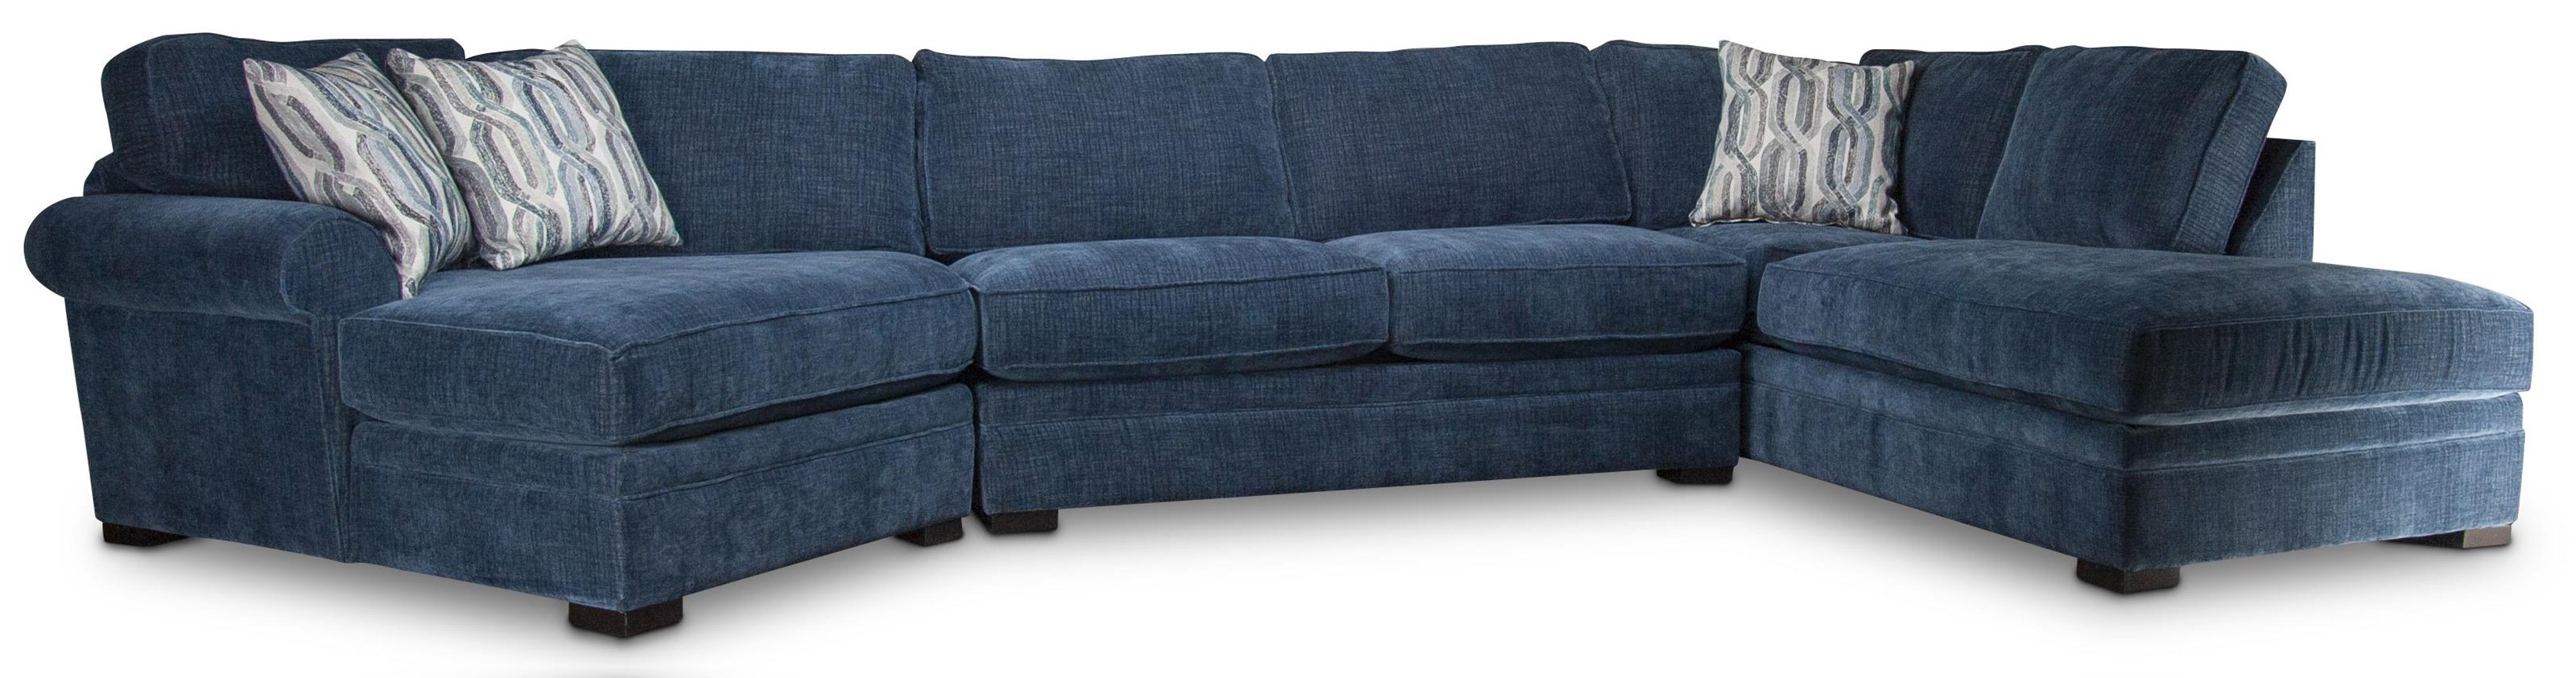 Linda Linda Sectional Sofa with Accent Pillows by Jonathan Louis at Morris Home